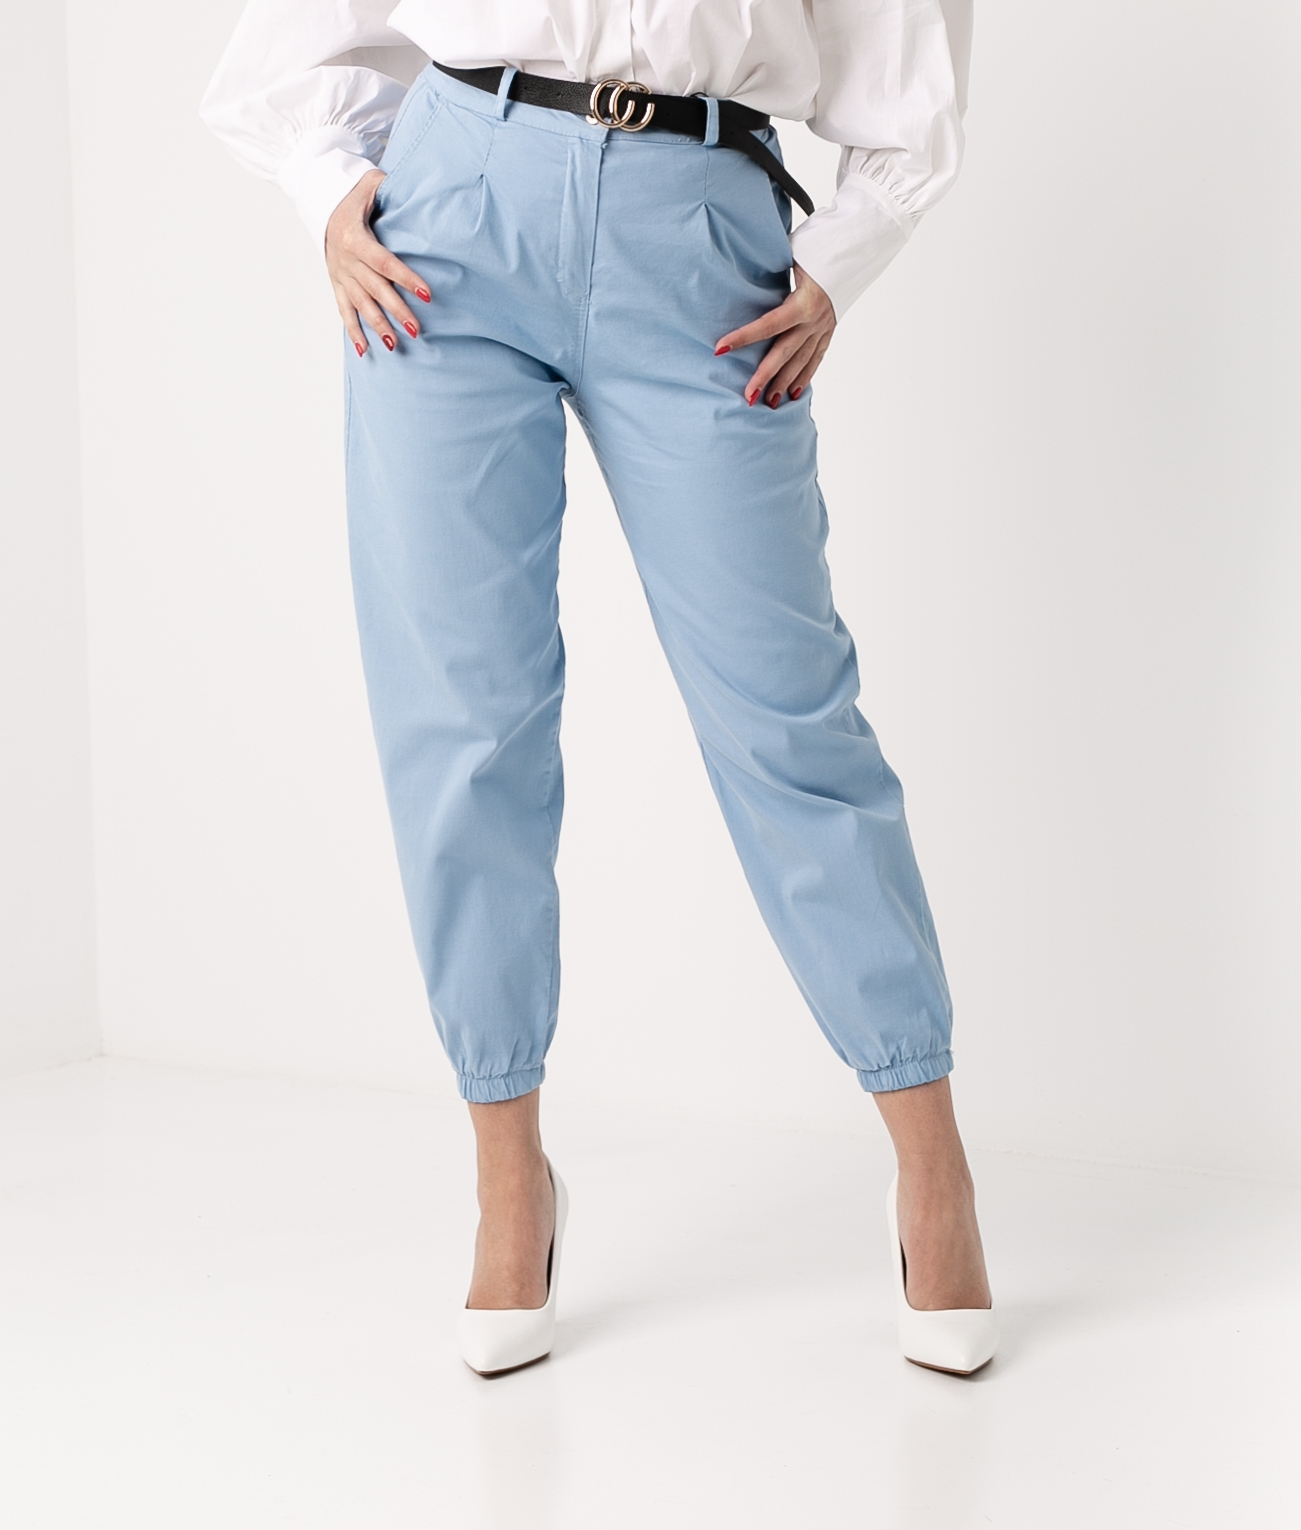 TROUSERS REXE - BLUE